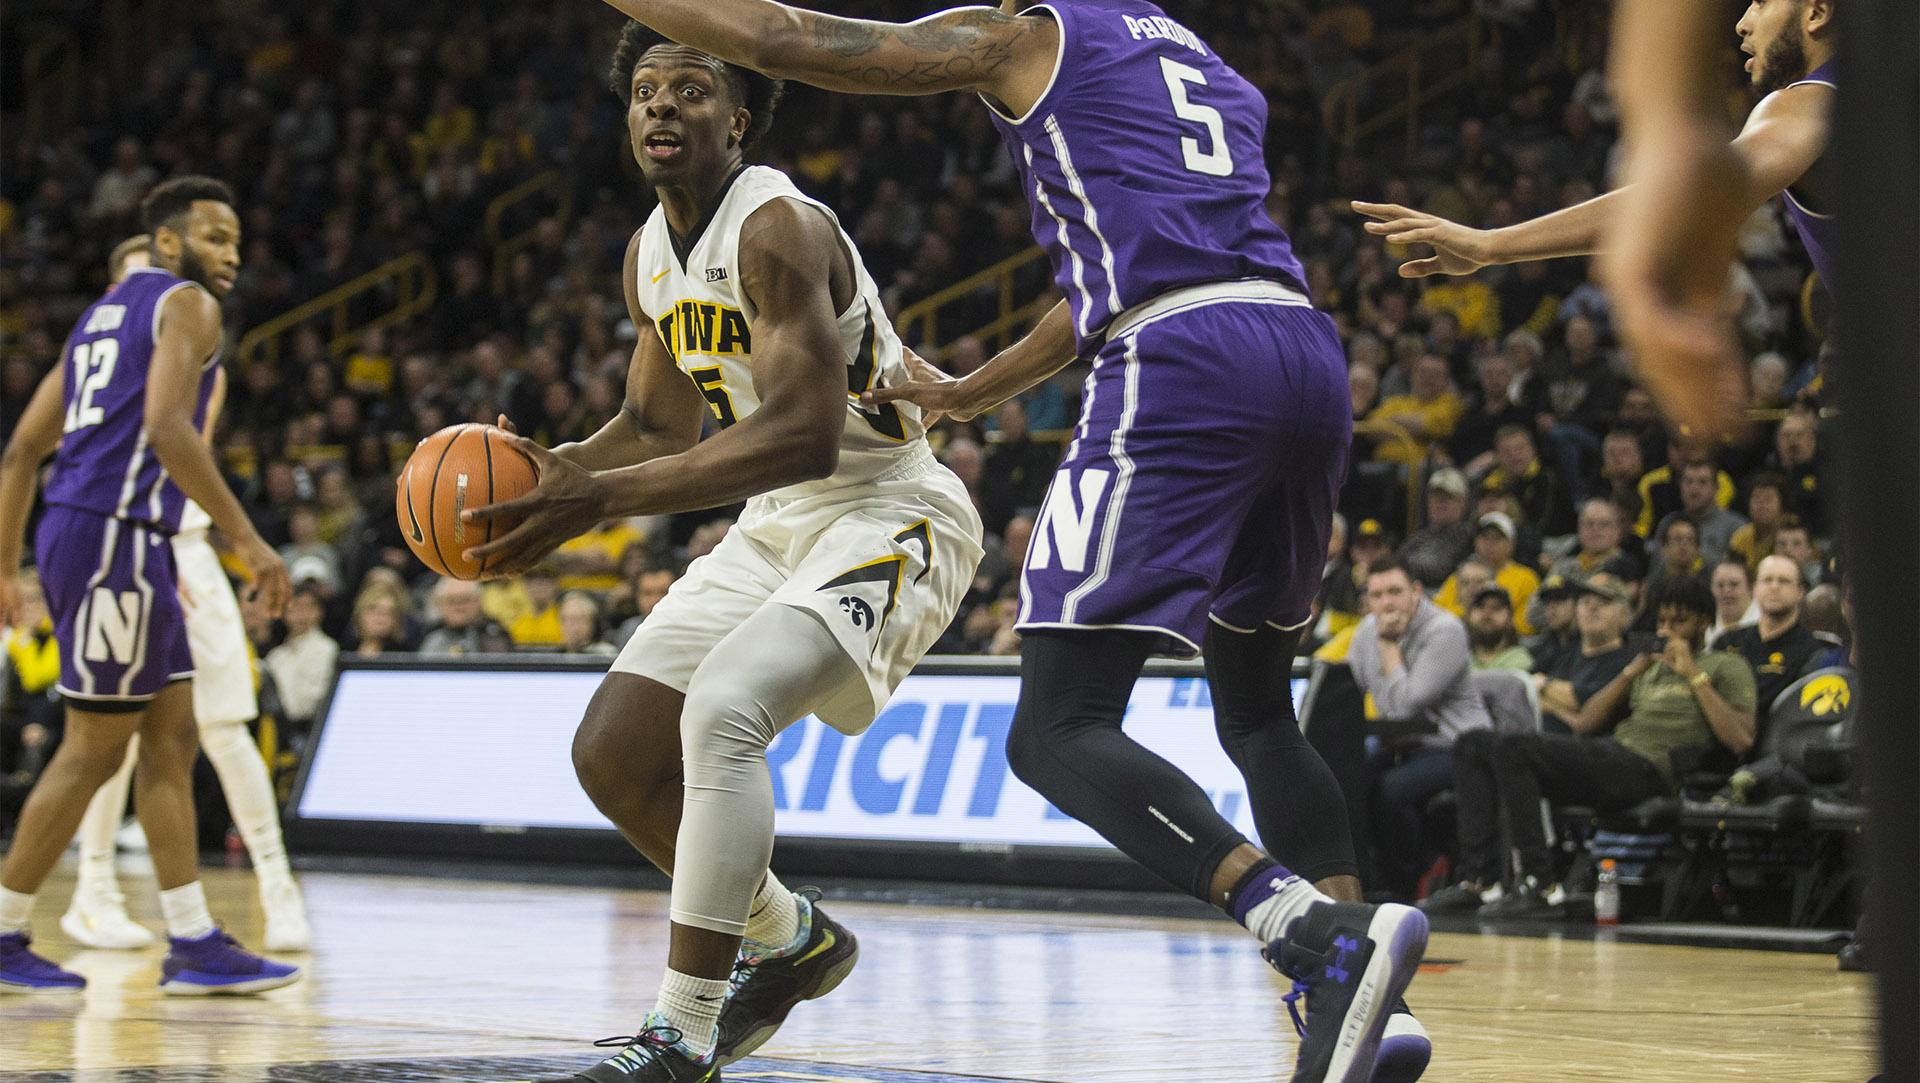 Five games in five days? That's the goal for Iowa hoops